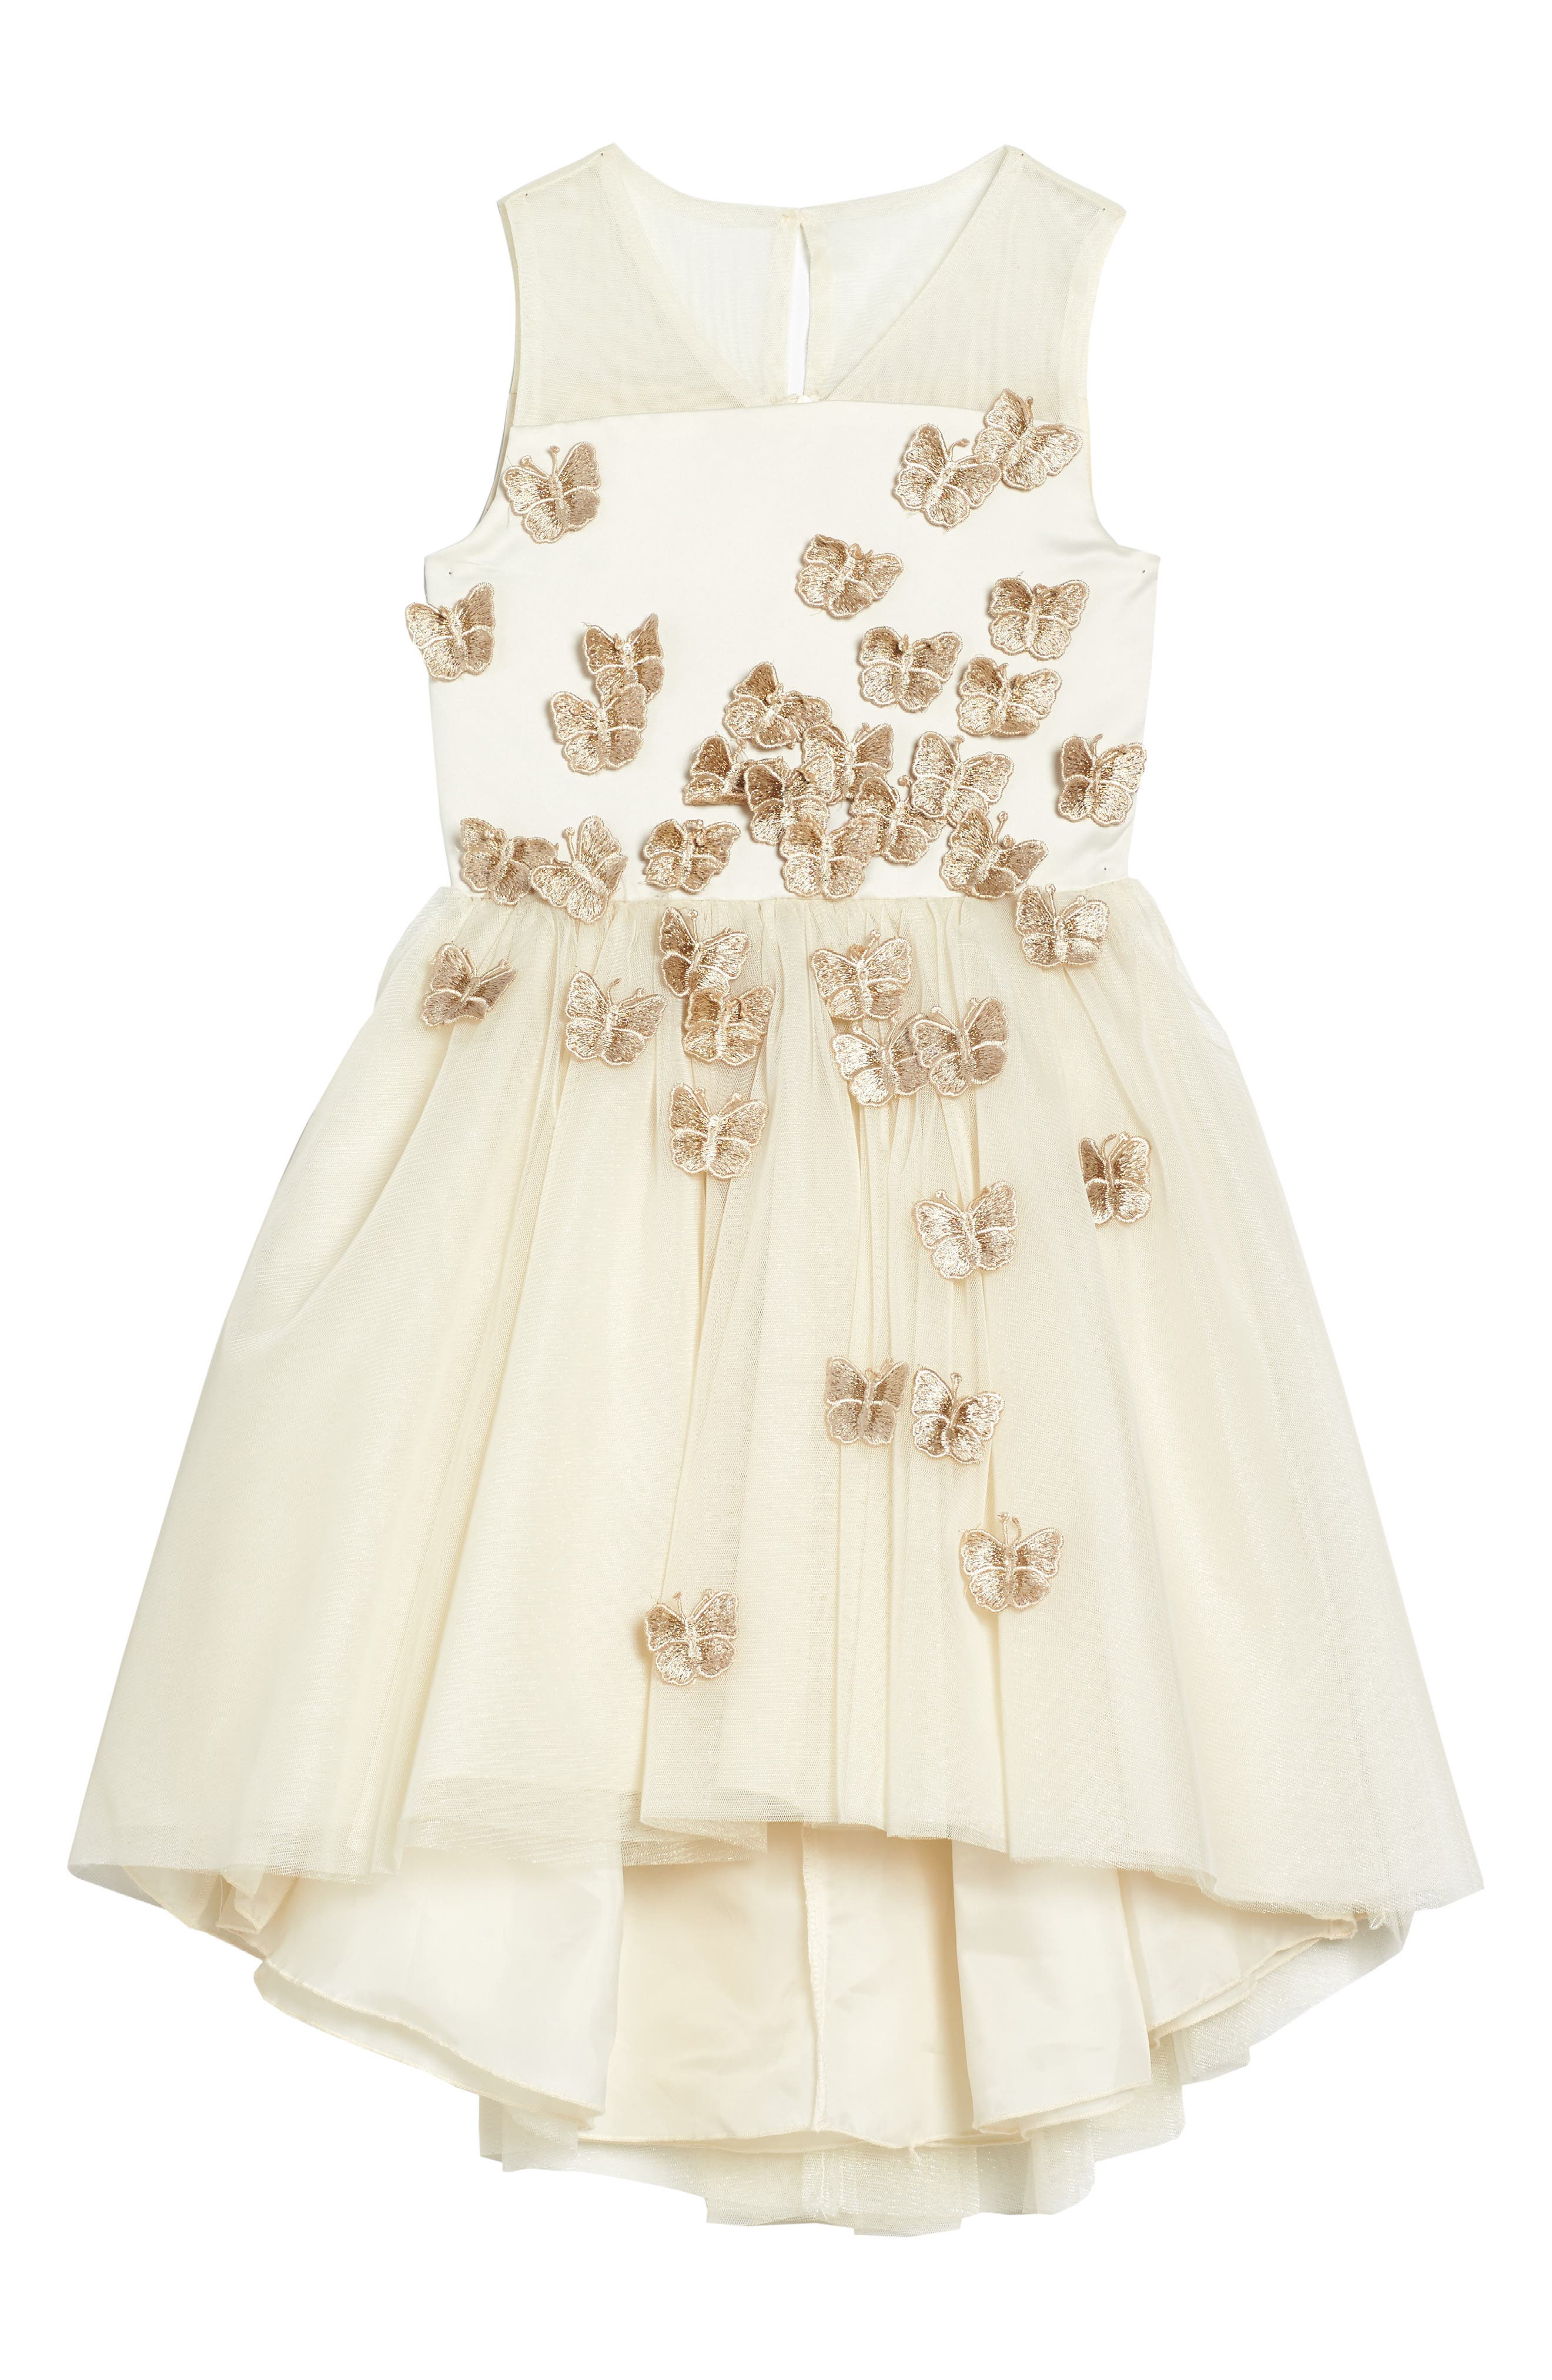 Nanette Lapore Butterfly Dress,                             Main thumbnail 1, color,                             Cream